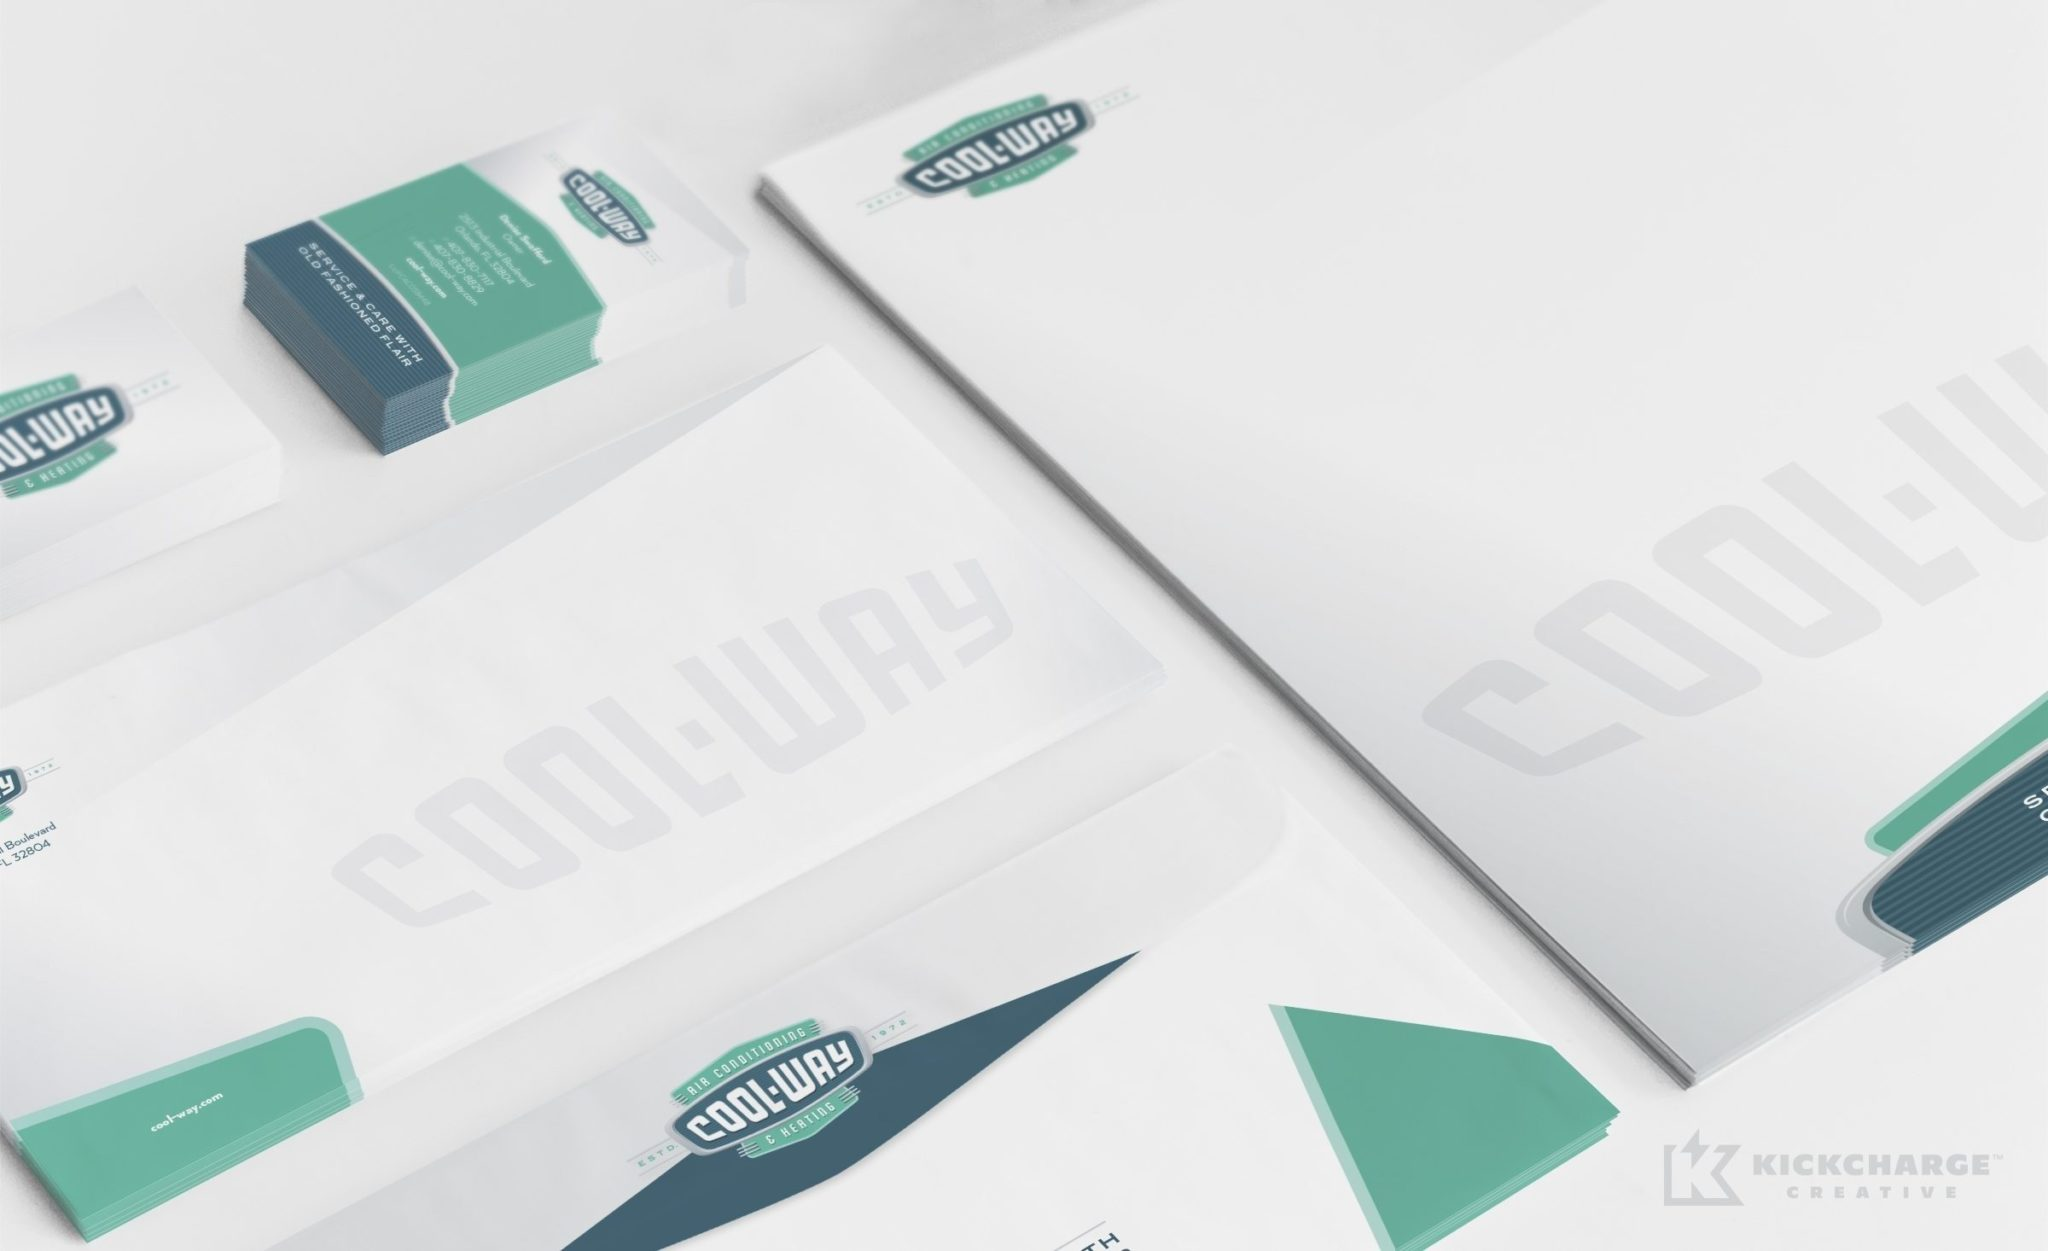 Retro stationery design for Cool-Way Air Conditioning, an HVAC contractor in Florida.